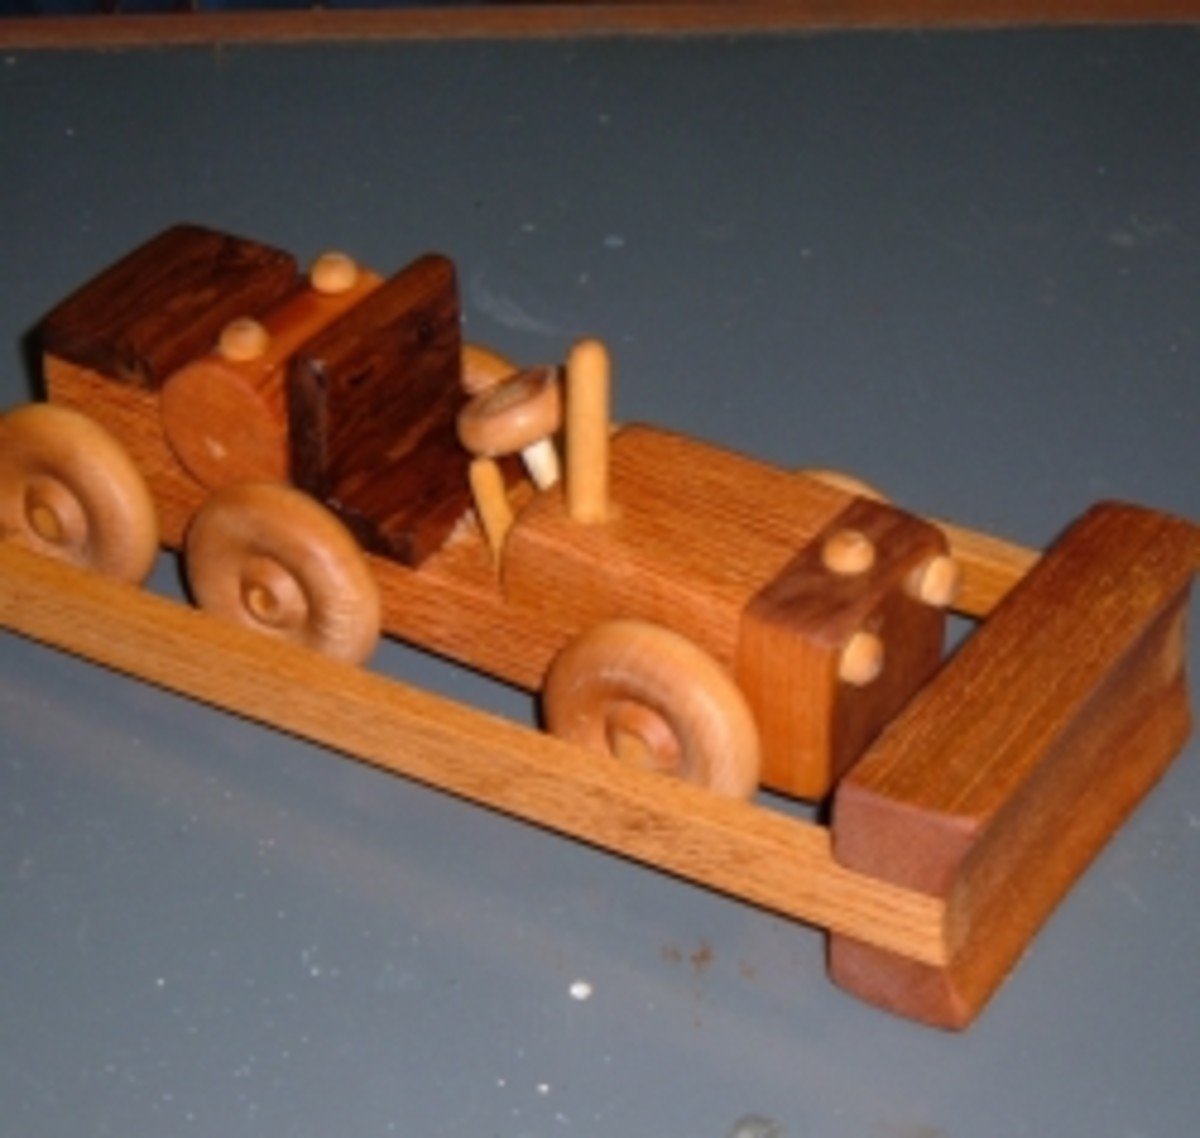 How to Make a Toy Bulldozer